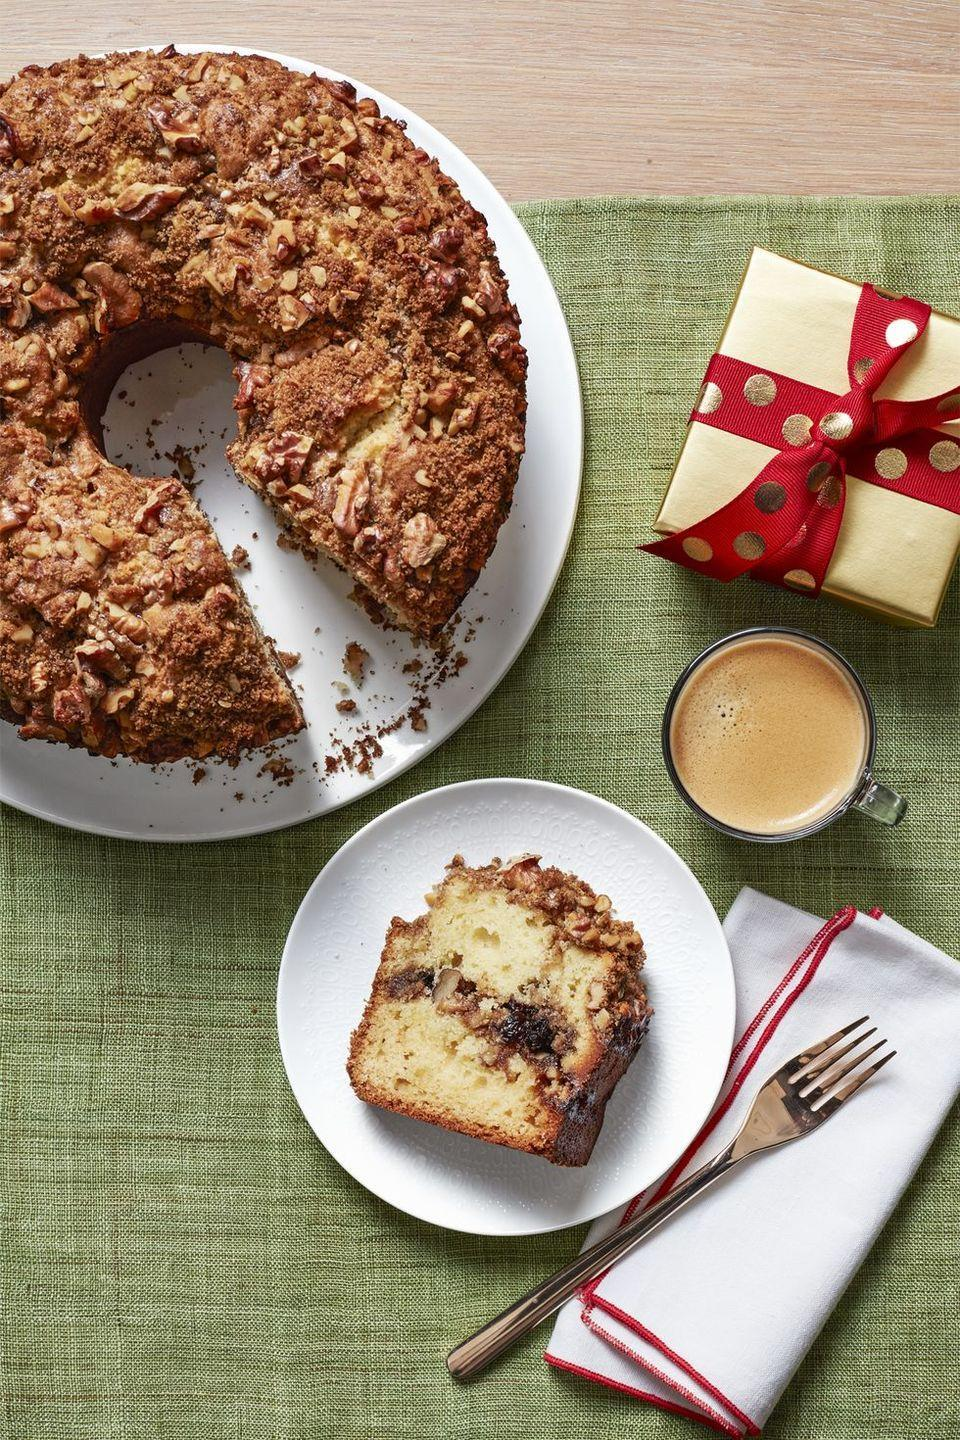 "<p>Because no one wants to bake a cake before they've had coffee, this fully-baked treat lasts in the freezer for up to 3 days and thaws in about an hour, so it'll be ready for you and your coffee mug in the morning.</p><p><em><a href=""https://www.womansday.com/food-recipes/recipes/a56899/freeze-ahead-coffee-cake-recipe/"" rel=""nofollow noopener"" target=""_blank"" data-ylk=""slk:Get the recipe from Woman's Day »"" class=""link rapid-noclick-resp"">Get the recipe from Woman's Day »</a></em></p>"